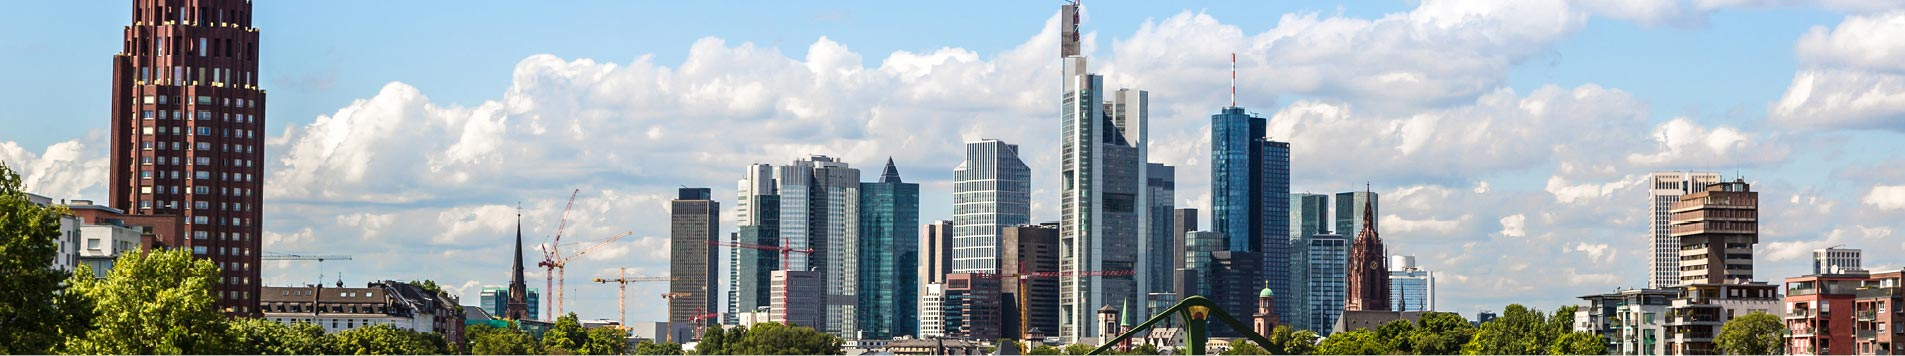 Leakage Strategie Frankfurt am Main